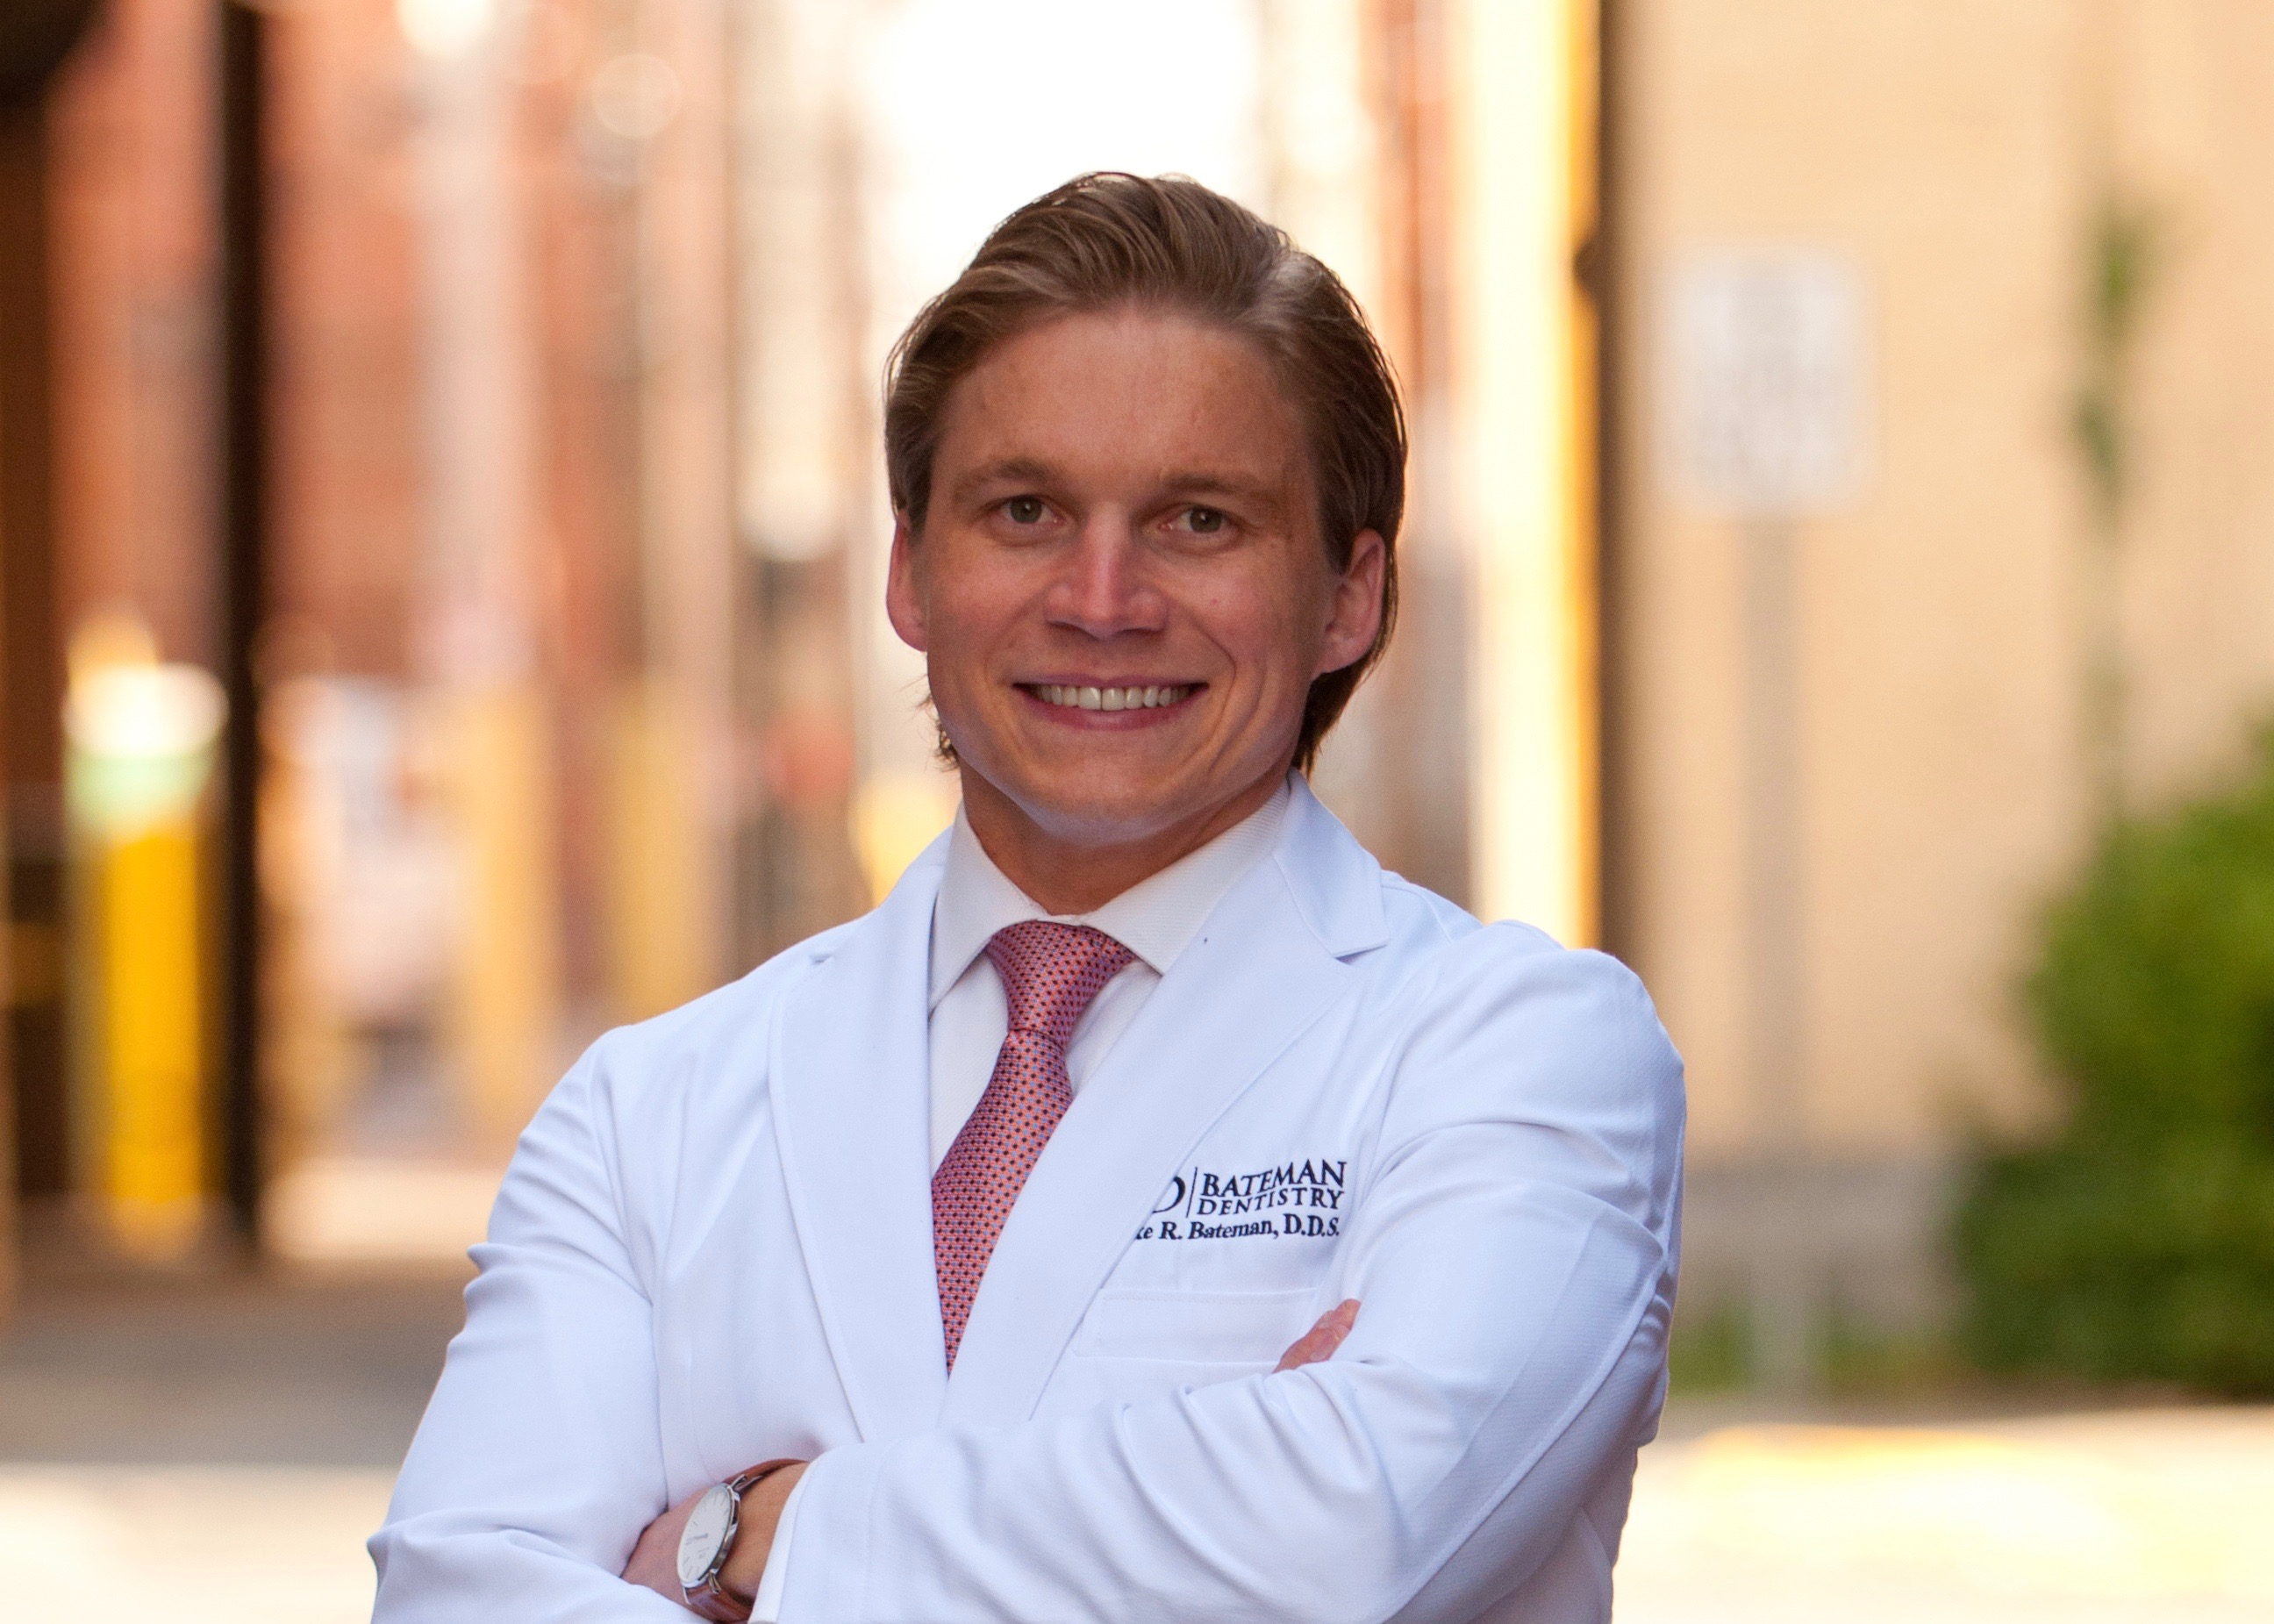 Dr. Jake Bateman | Kingsport Dentist